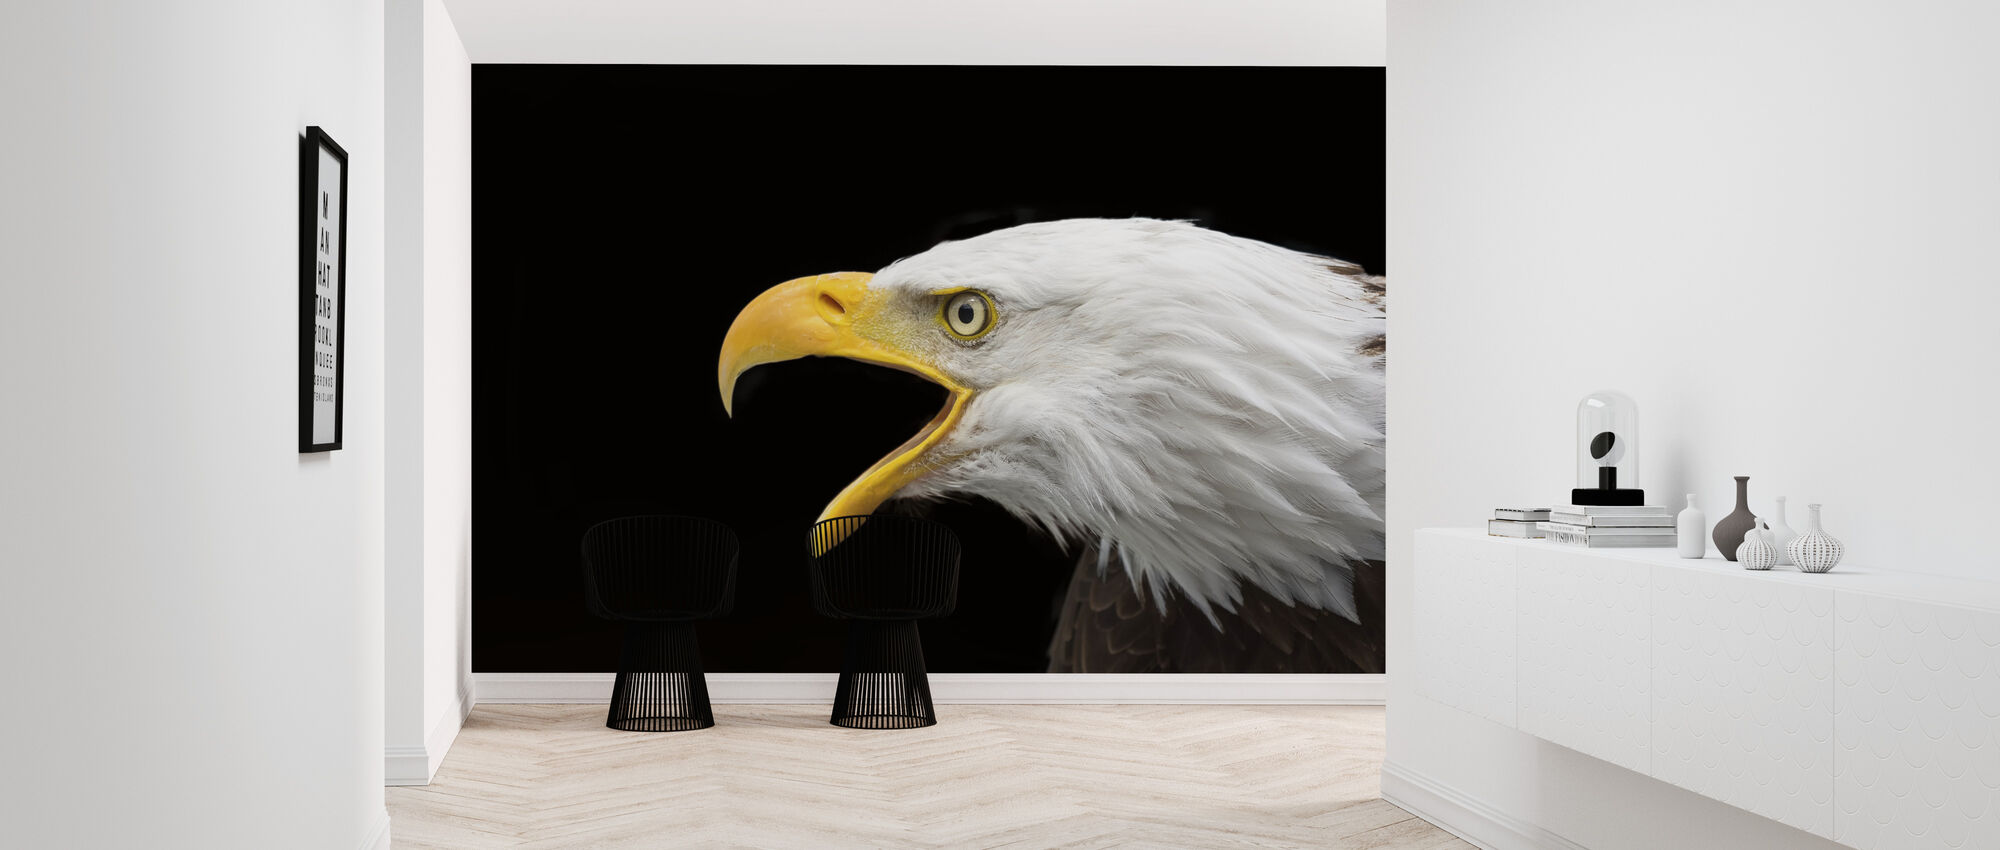 Bald Eagle - Wallpaper - Hallway